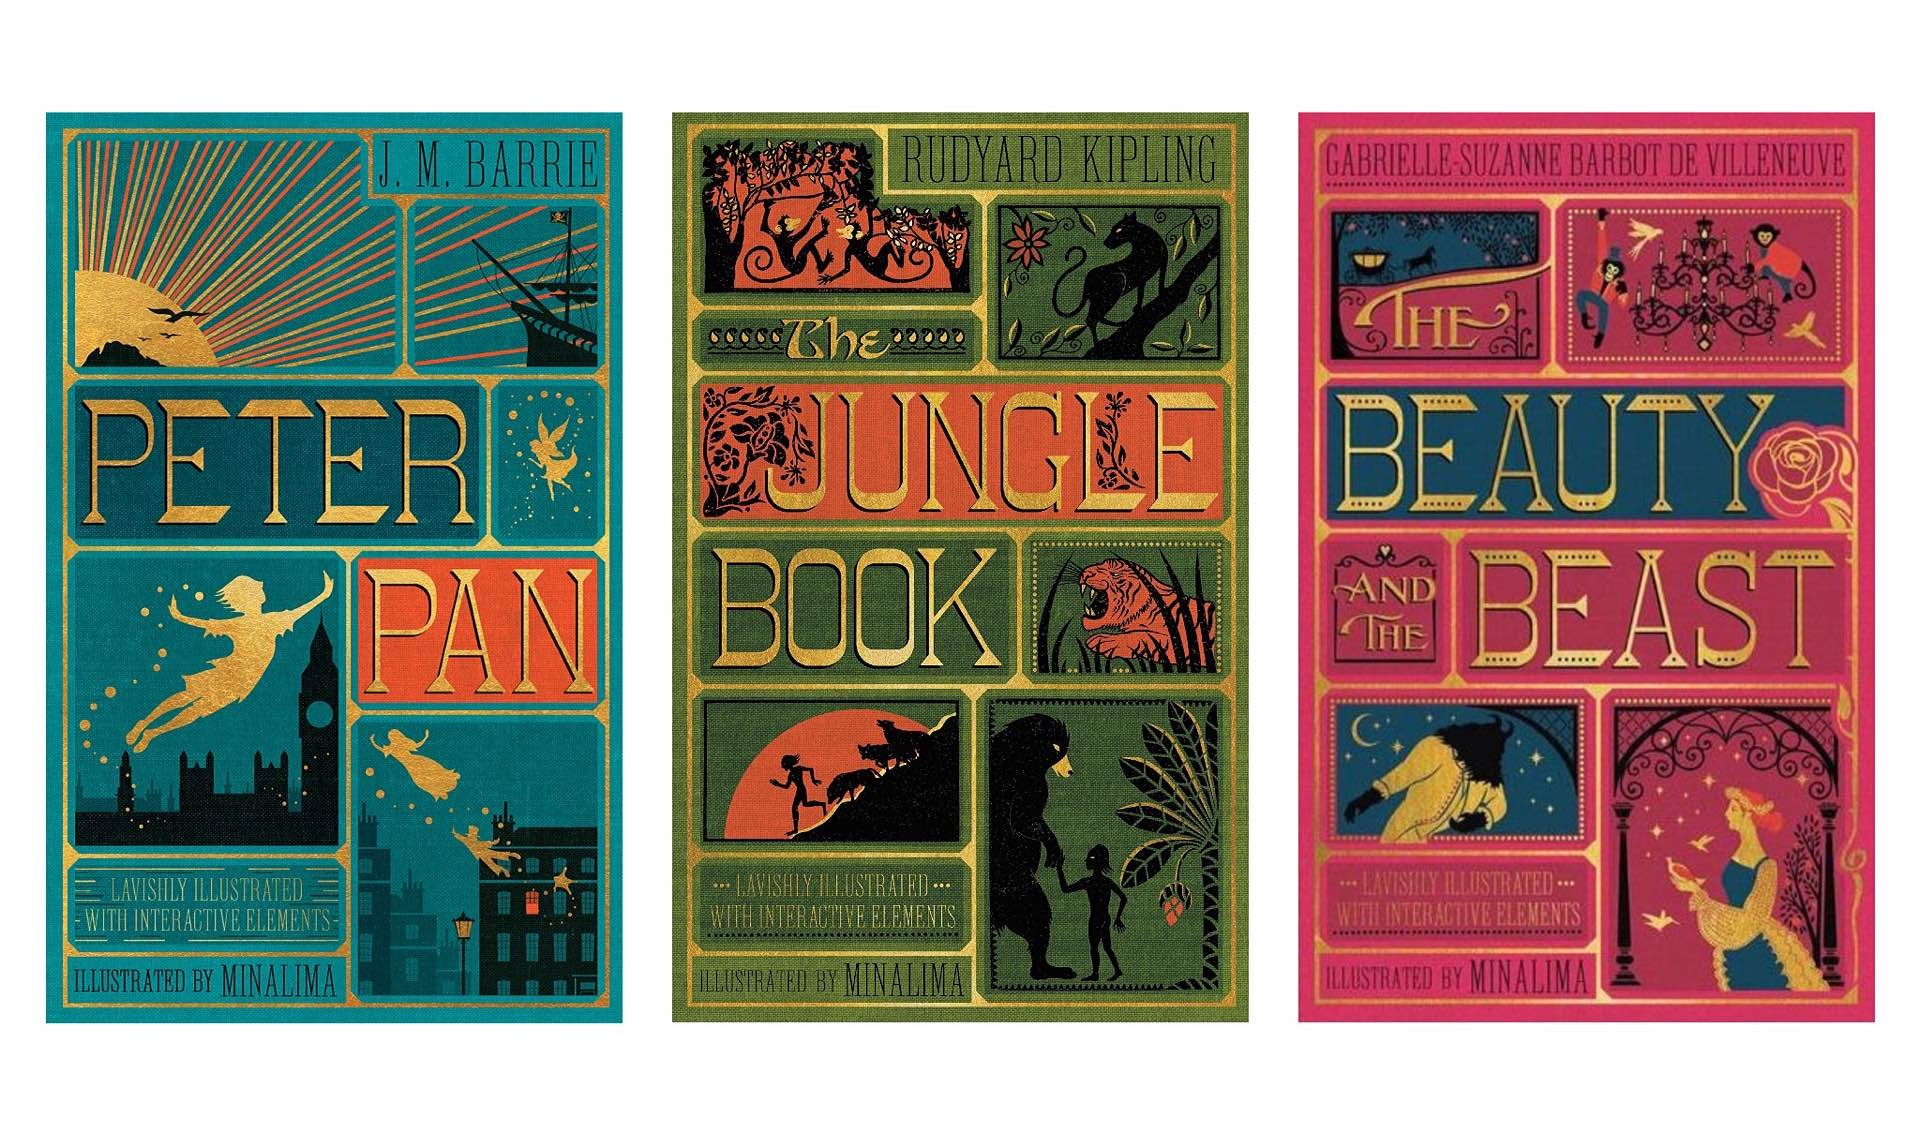 Illustrated Children's Classics by MinaLima. (~$21 for each hardcover)